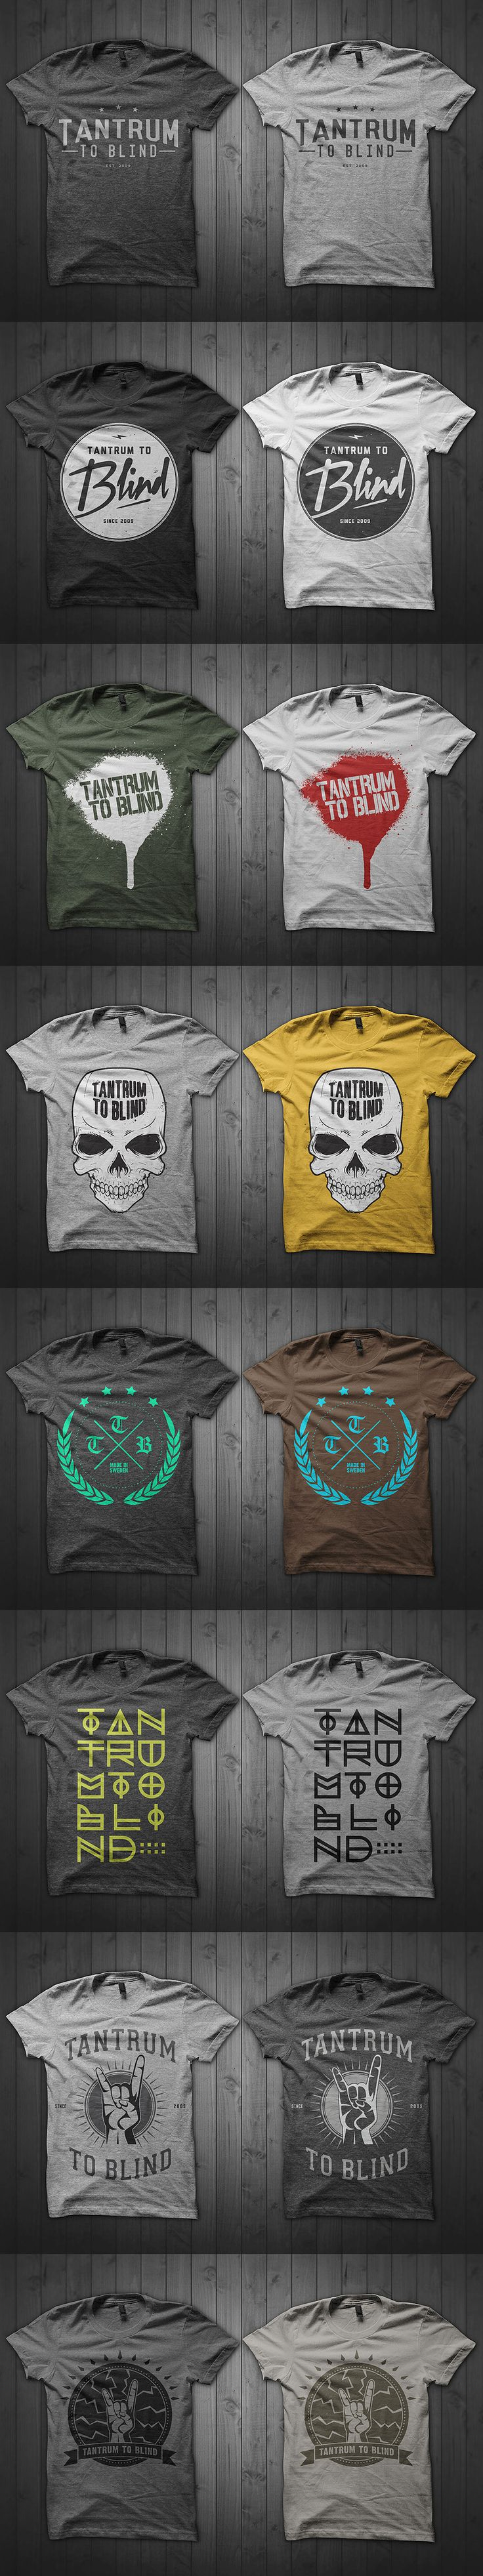 T shirt design using coreldraw - Customisable T Shirt Designs From Graphicriver